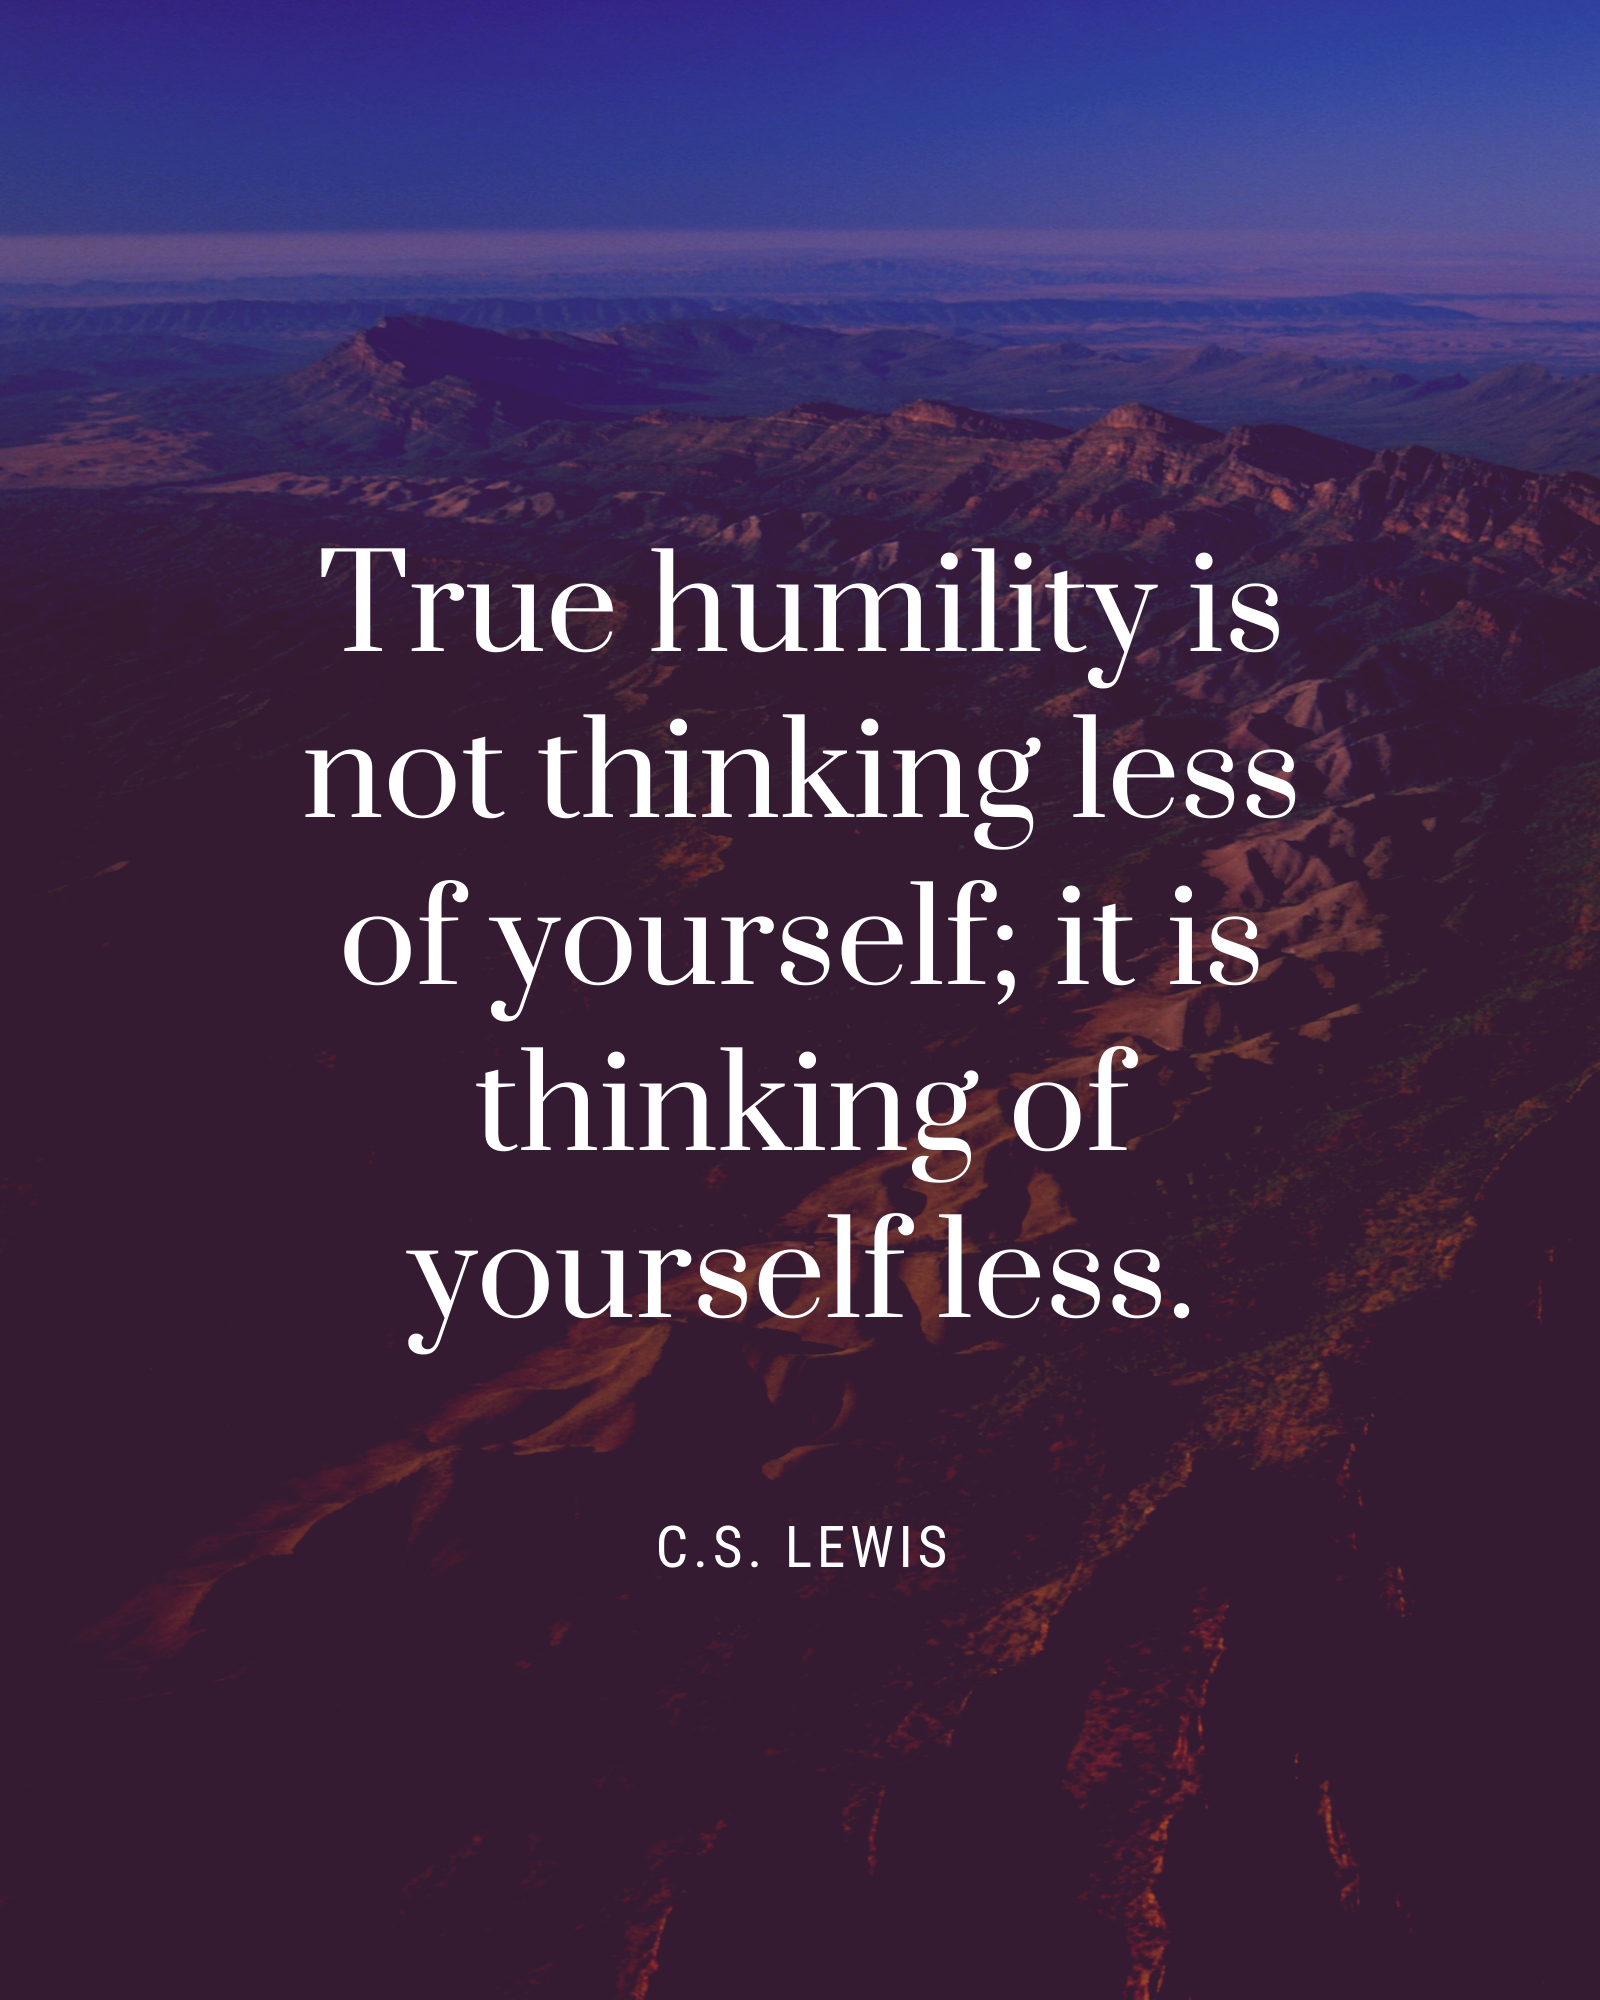 True humility is not thinking less of yourself